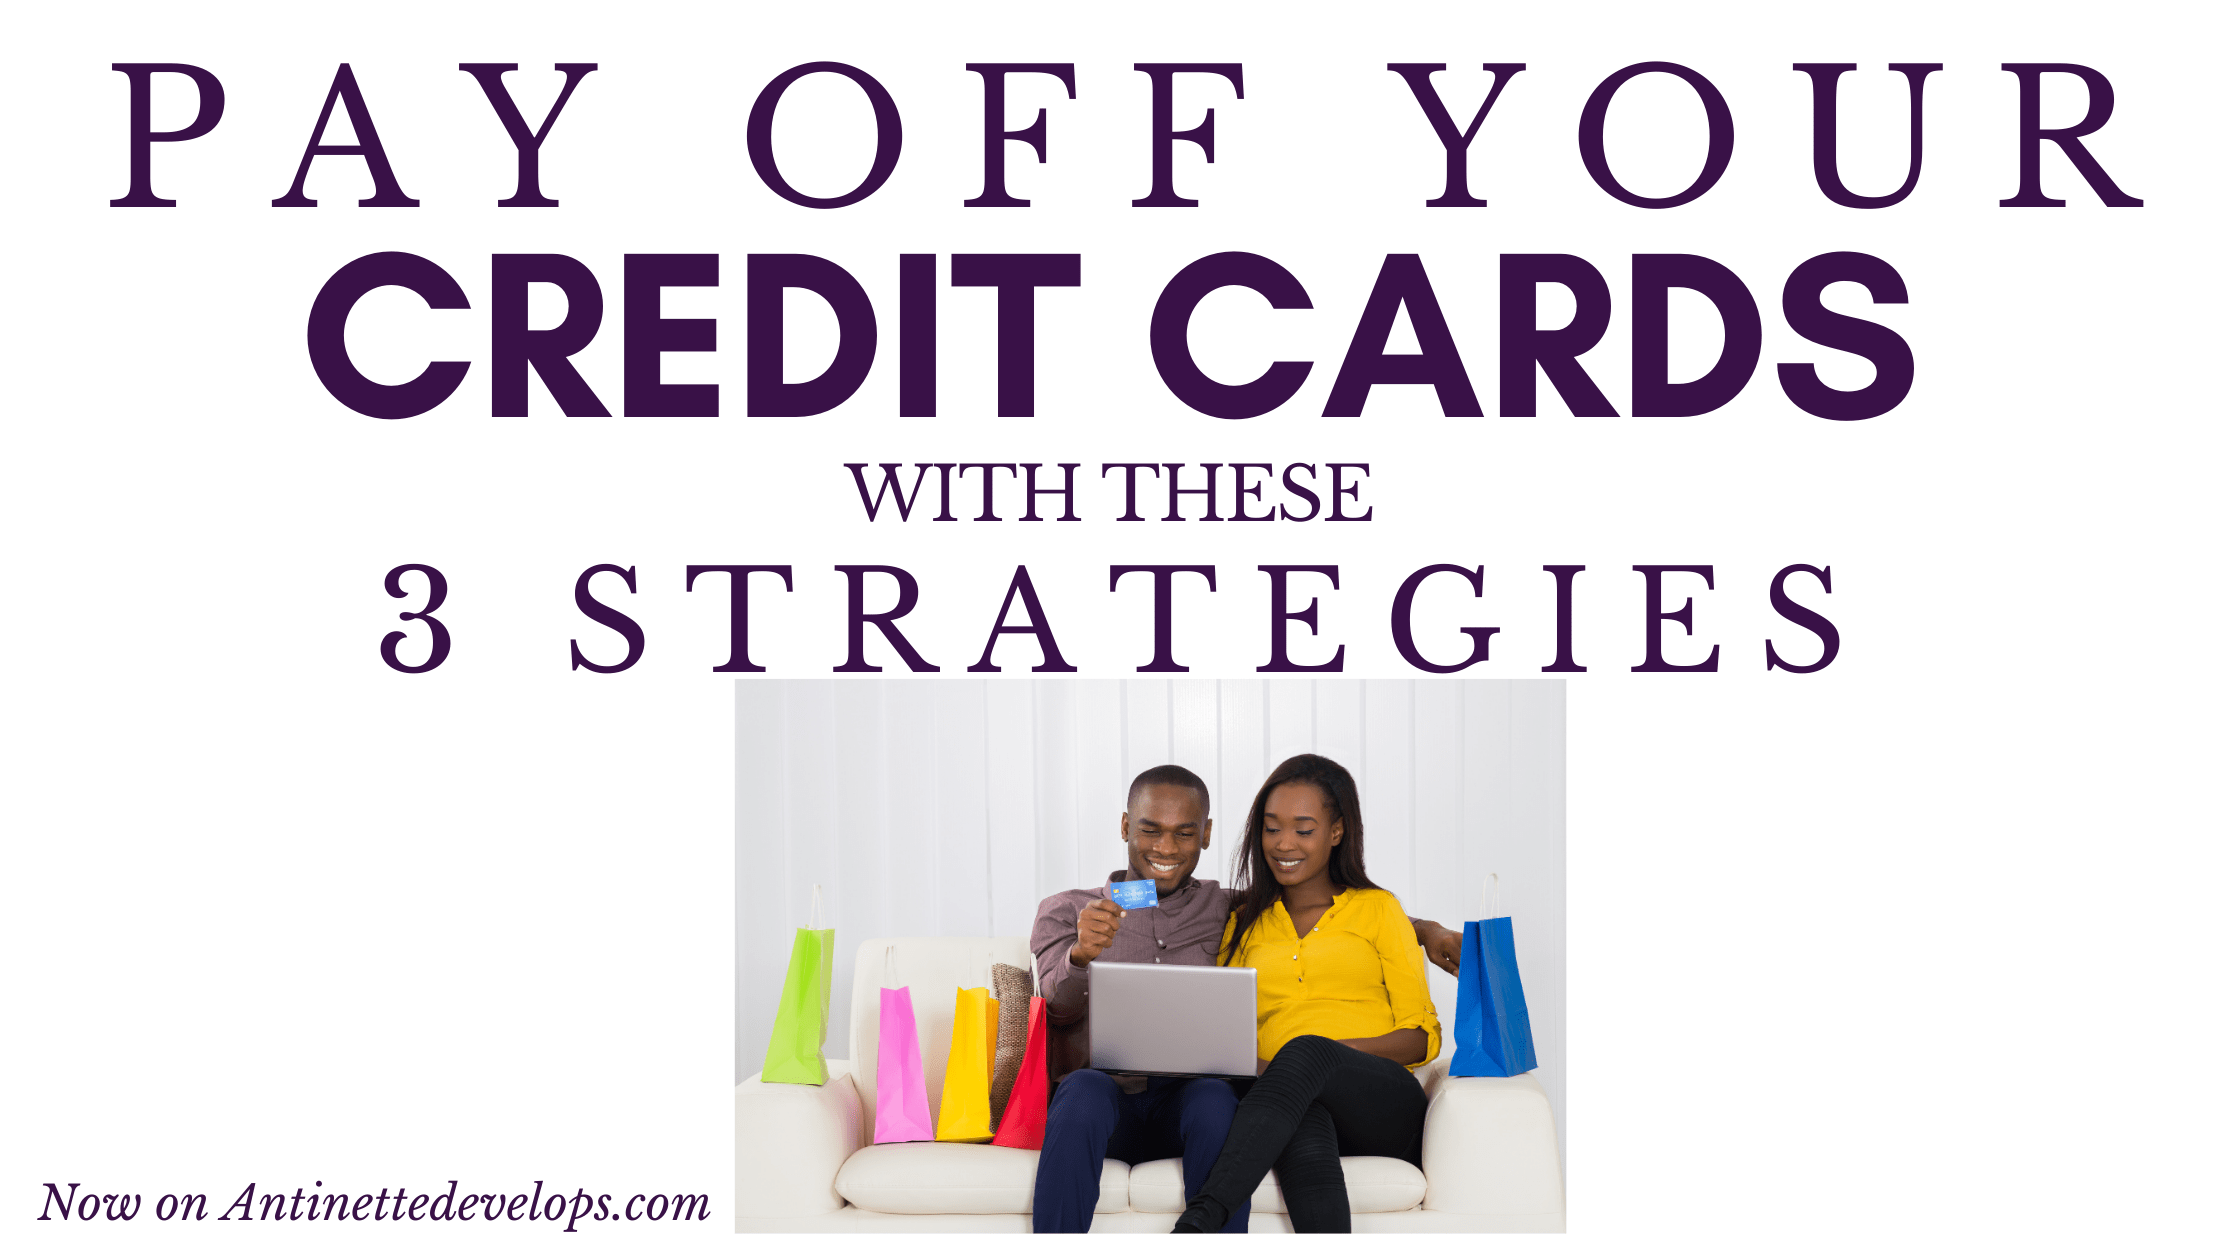 3 Ways to Pay Off Your Credit Cards